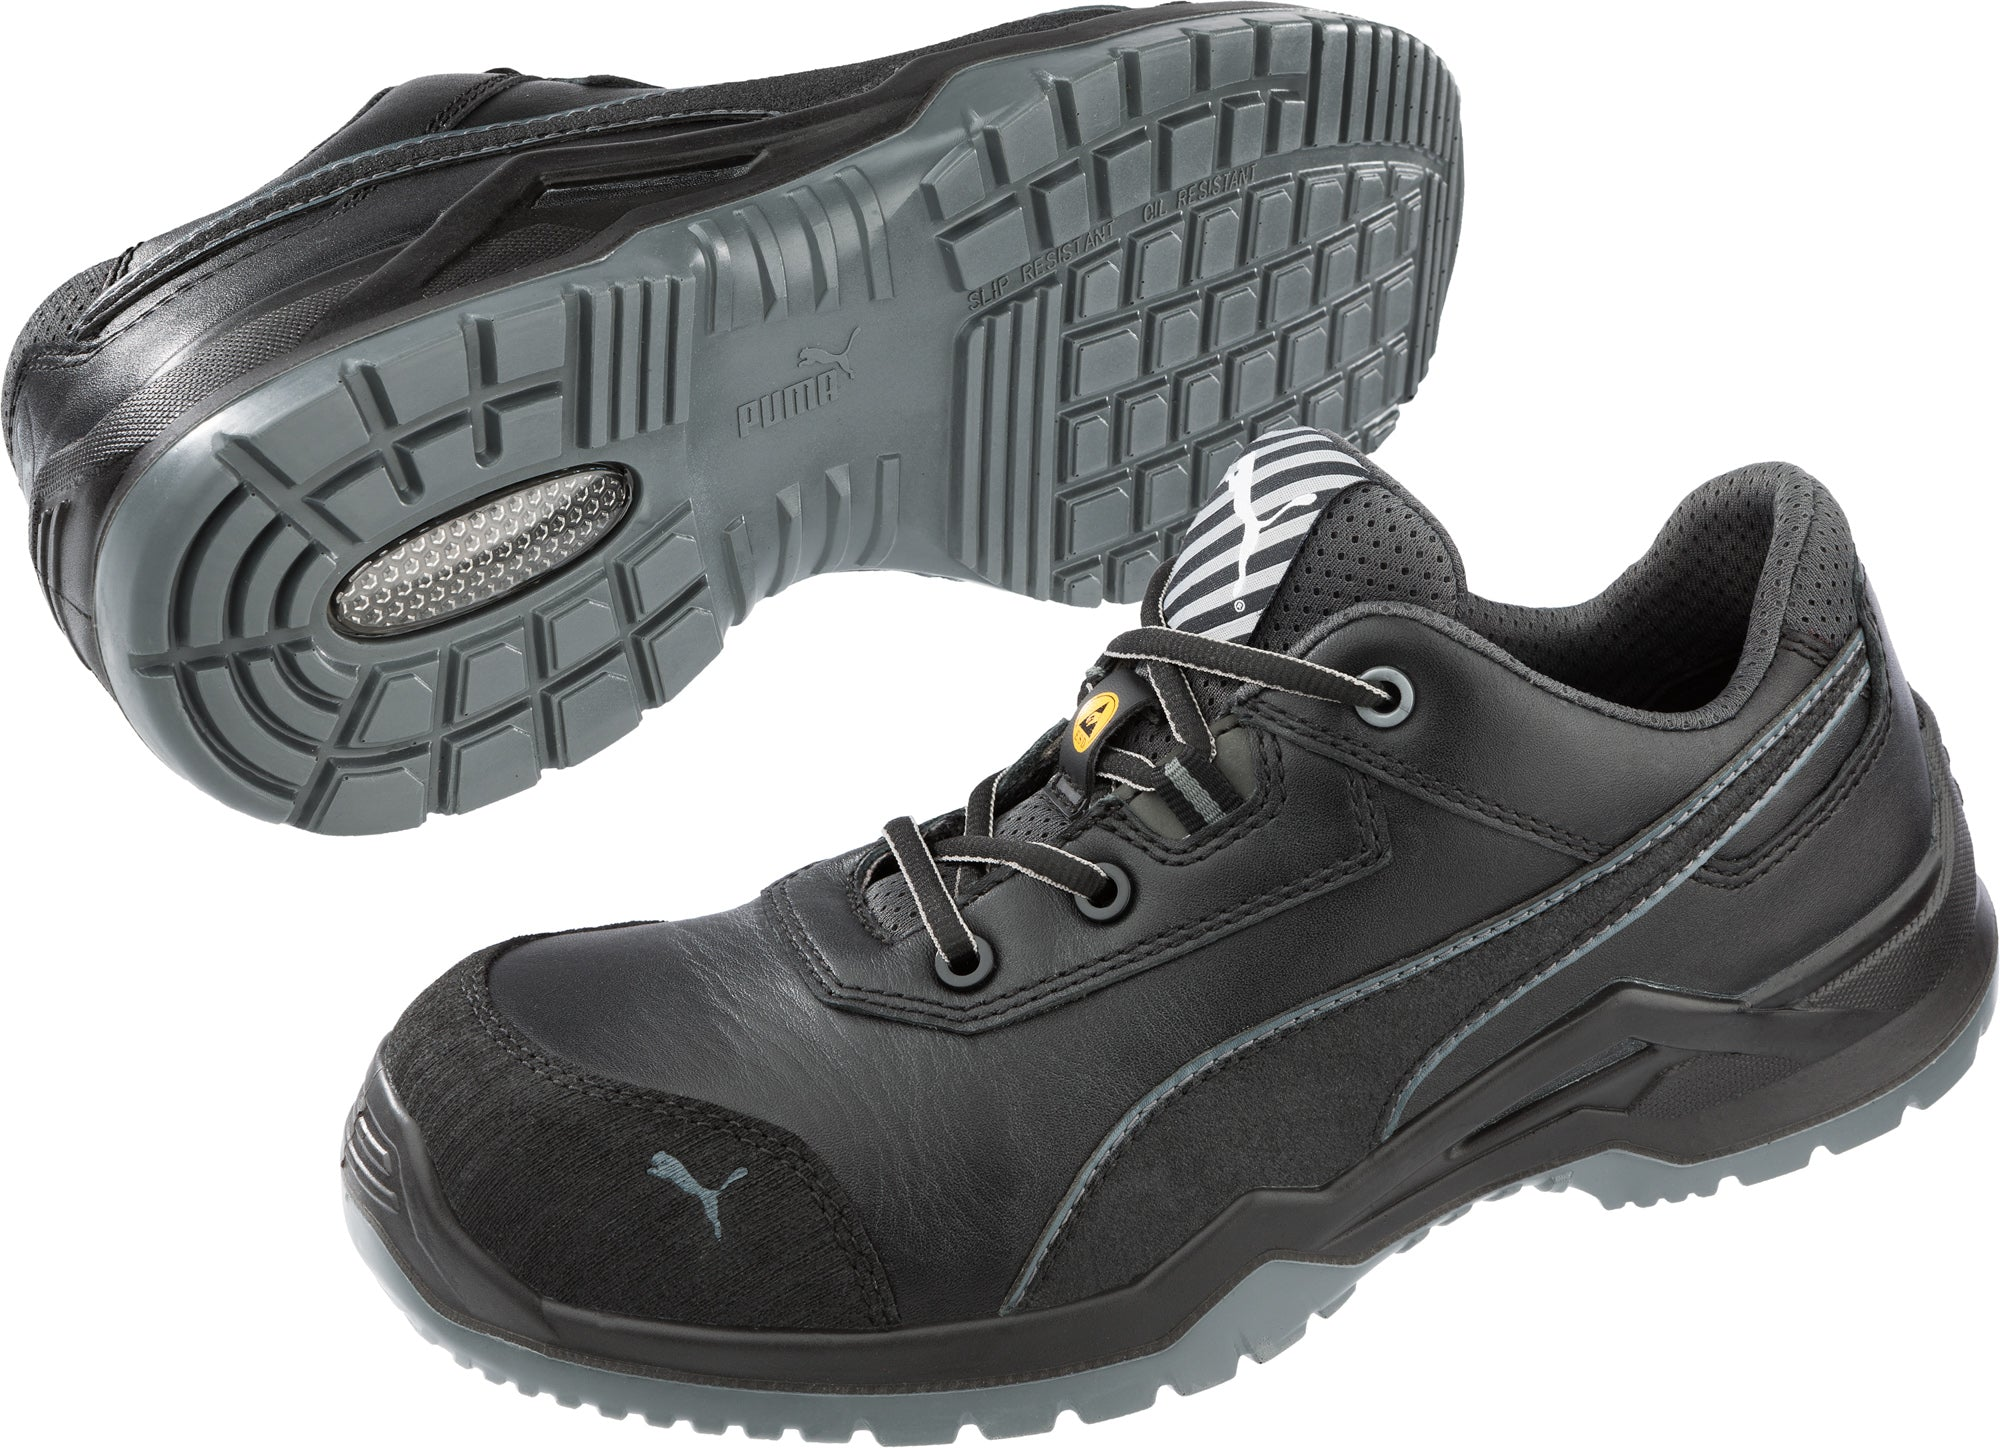 ac8956b4877c42 Puma Safety Black Mens Leather Argon Low SD ASTM CT Oxfords Work ...